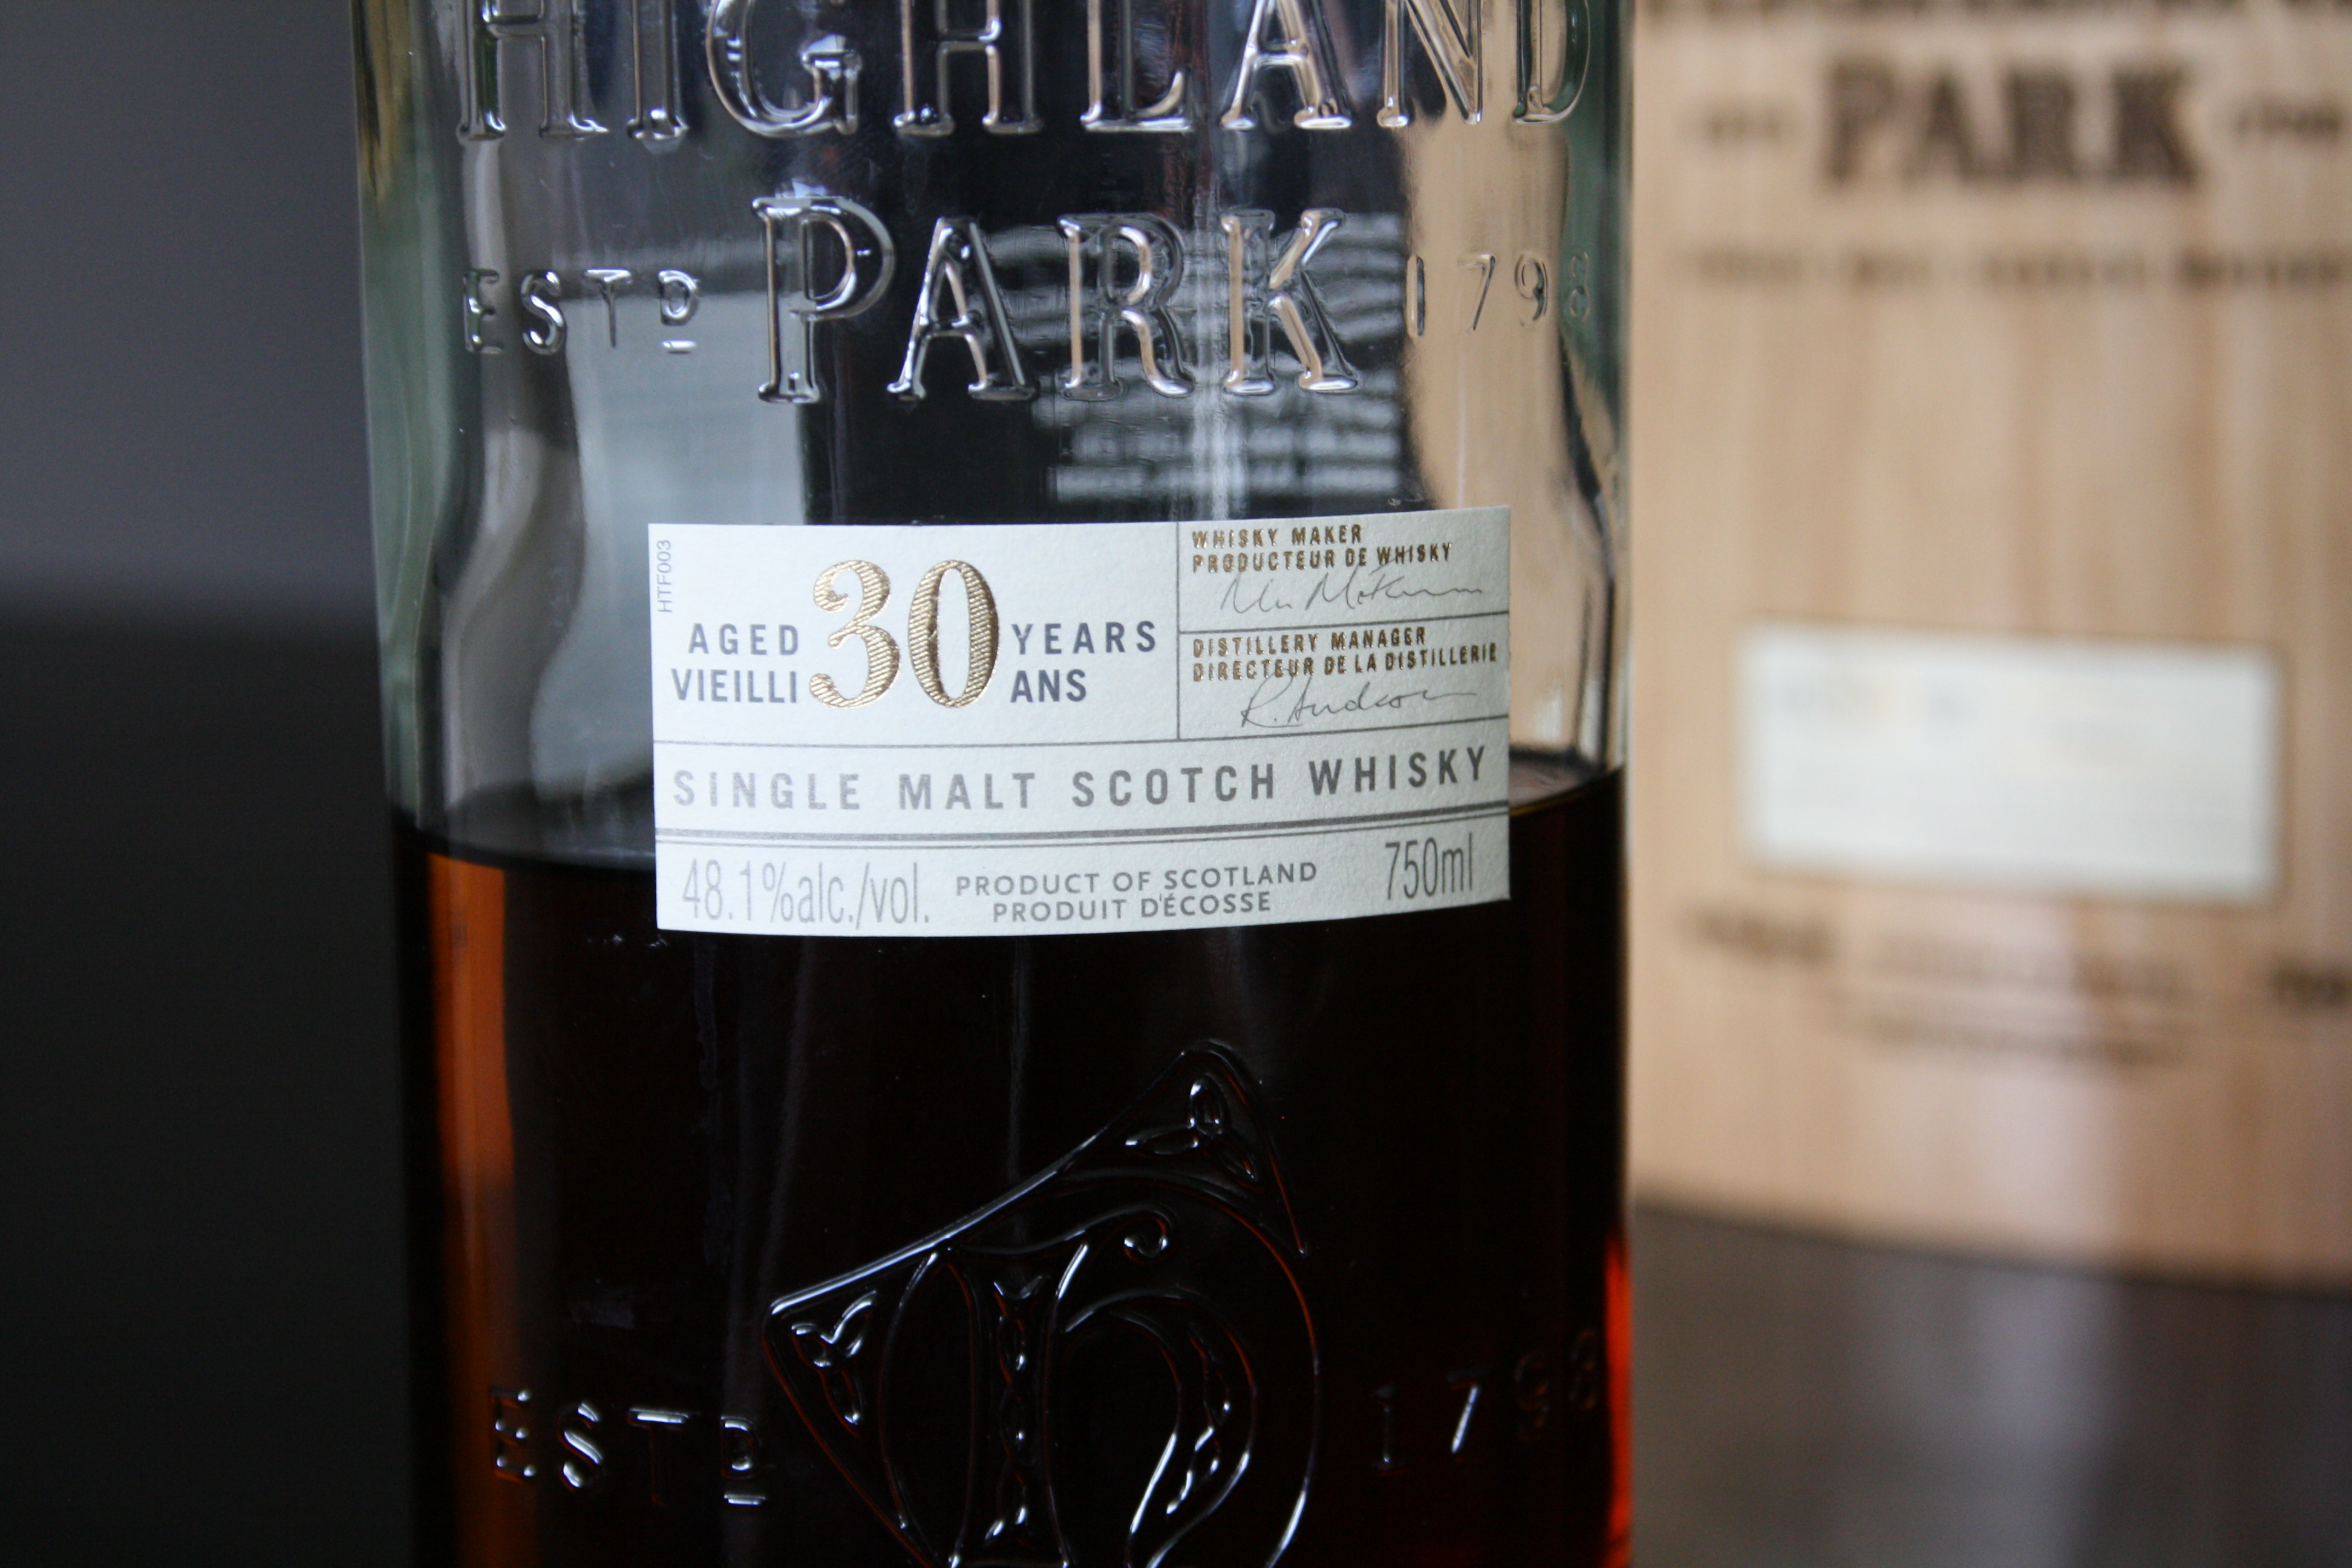 Whisky 4k ultra hd wallpaper background image 3888x2592 id 252150 wallpaper abyss - Highland park wallpaper ...